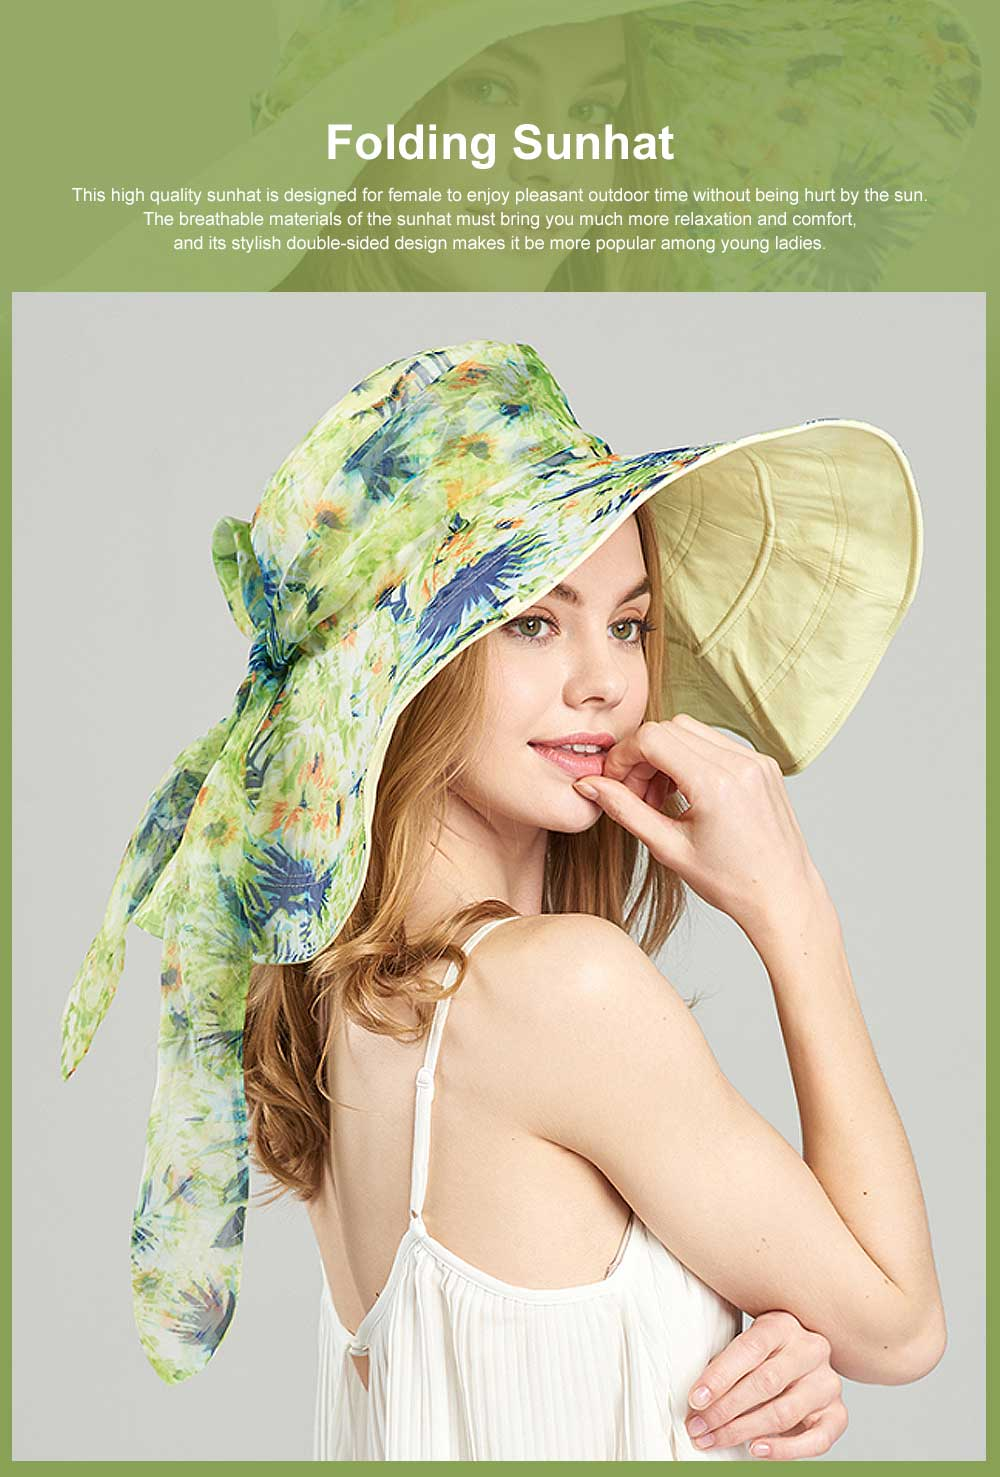 Folding Sunhat with Breathable Material, Stylish Ribbon Hat for Women, Best Choice Summer Sunhat for Beach, Outdoors 0